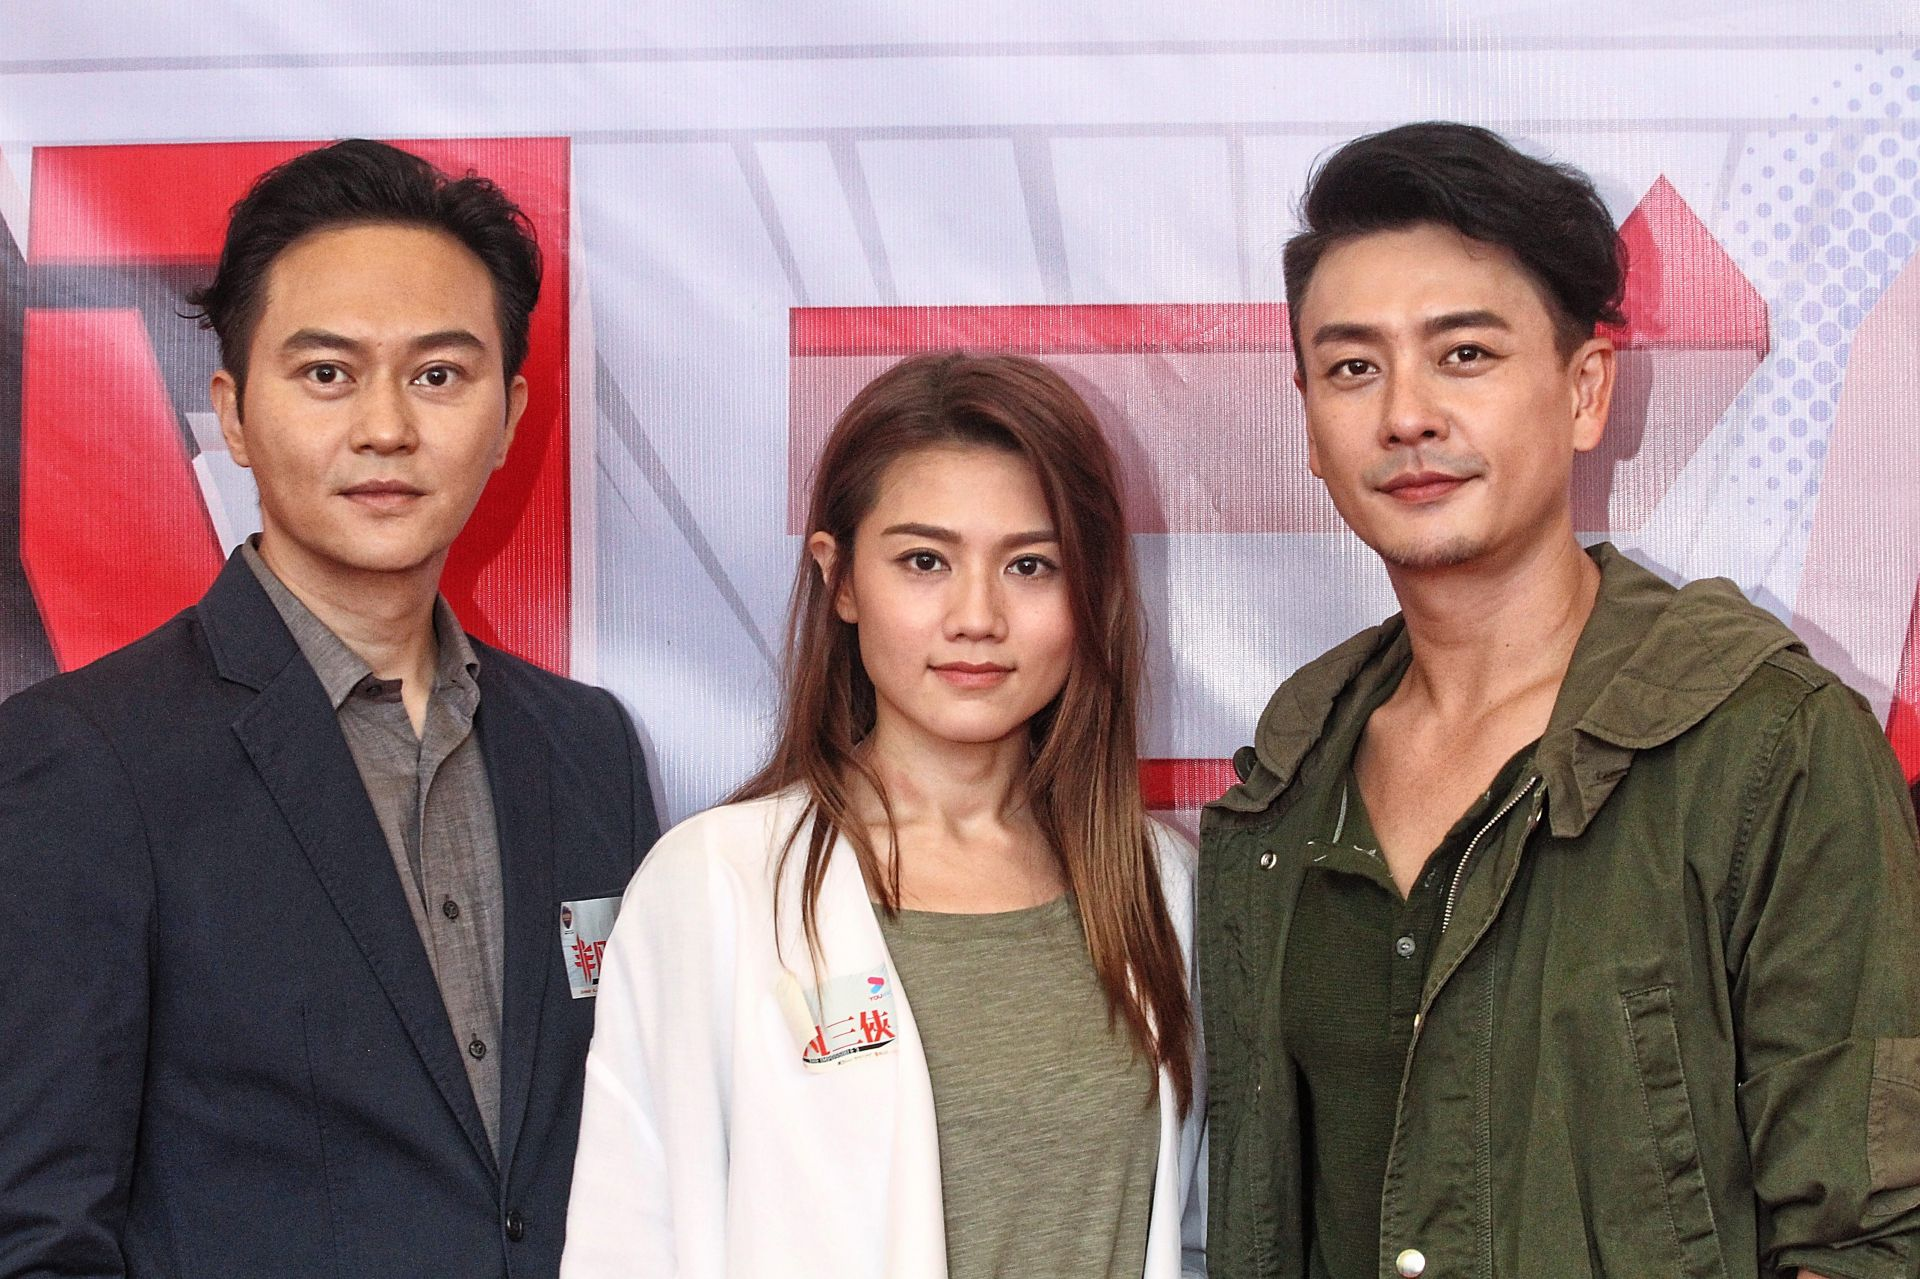 HK stars Julian Cheung and Bosco Wong in Malaysia shooting The Impossible 3